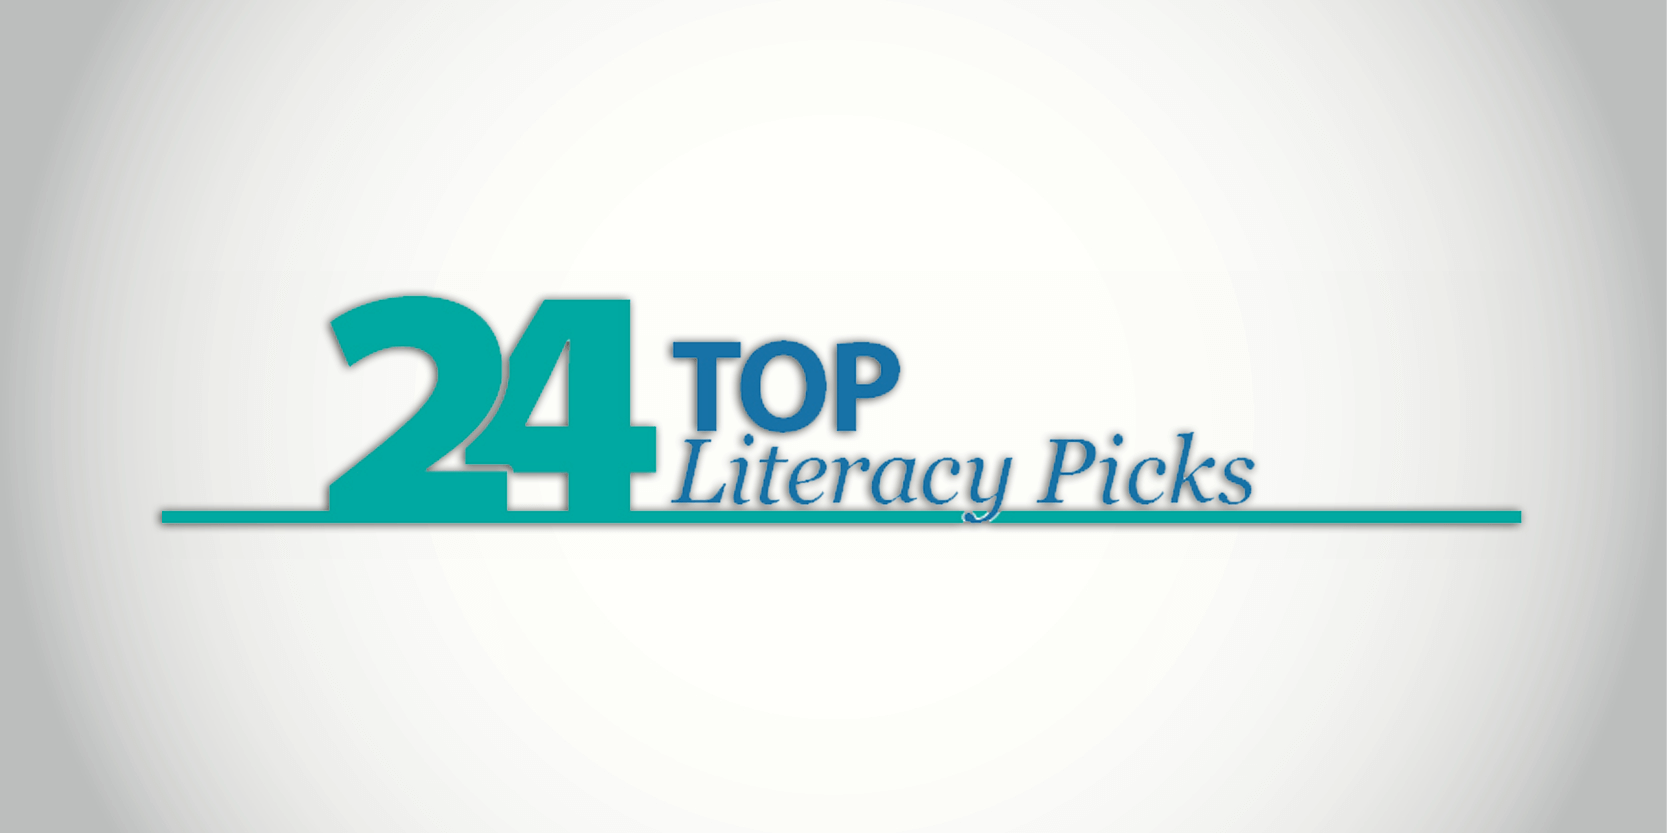 24 Top Literacy Picks